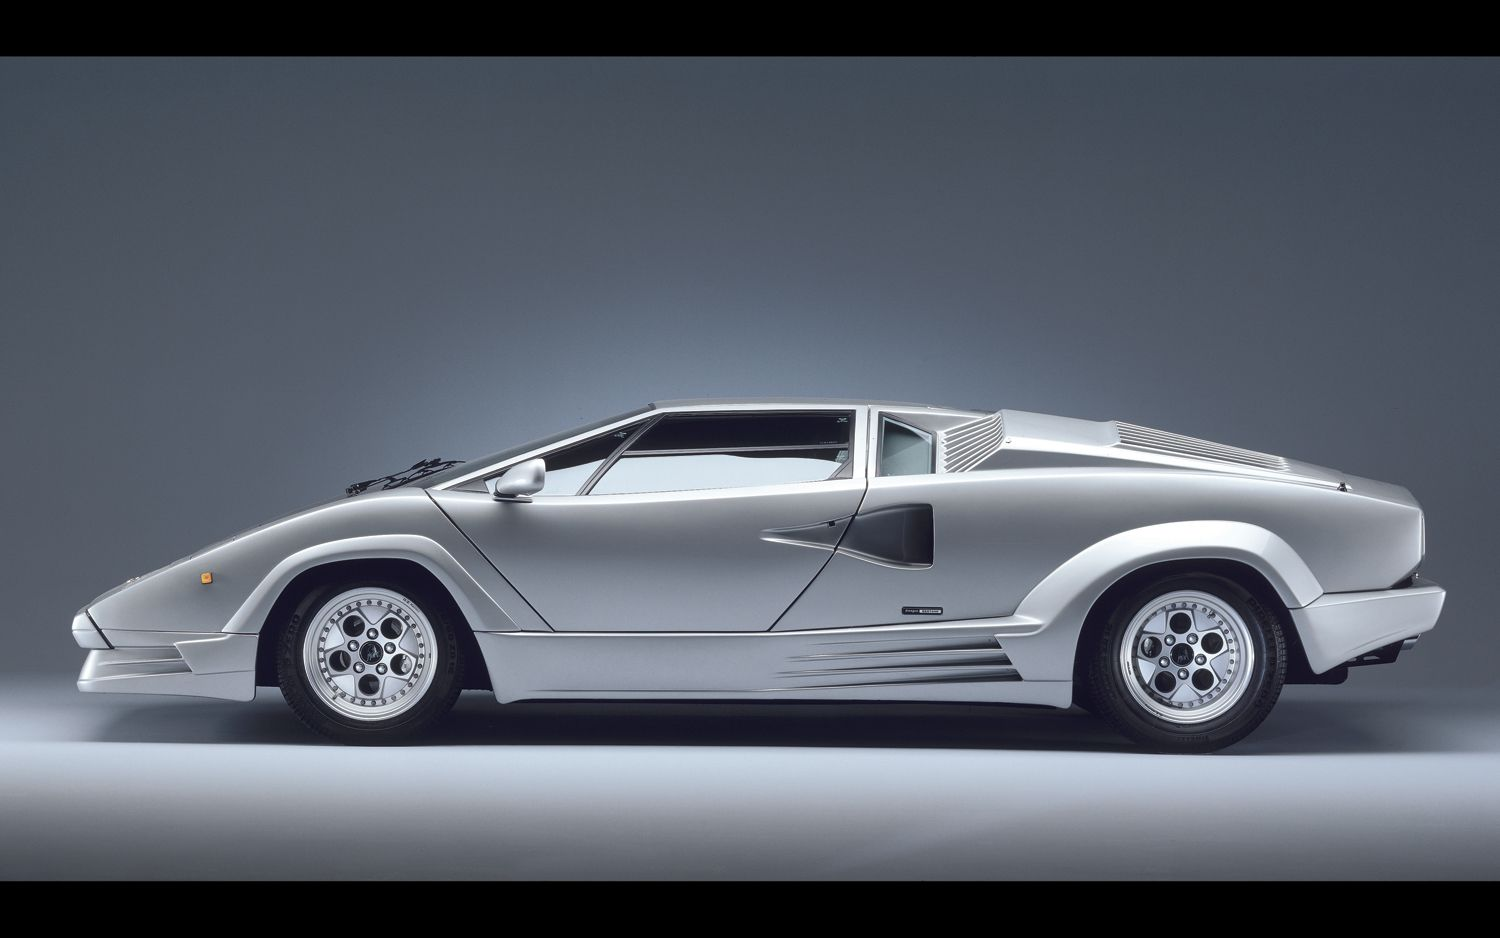 Wonderful Lamborghini Countach Side View Photo On January 30, 2012